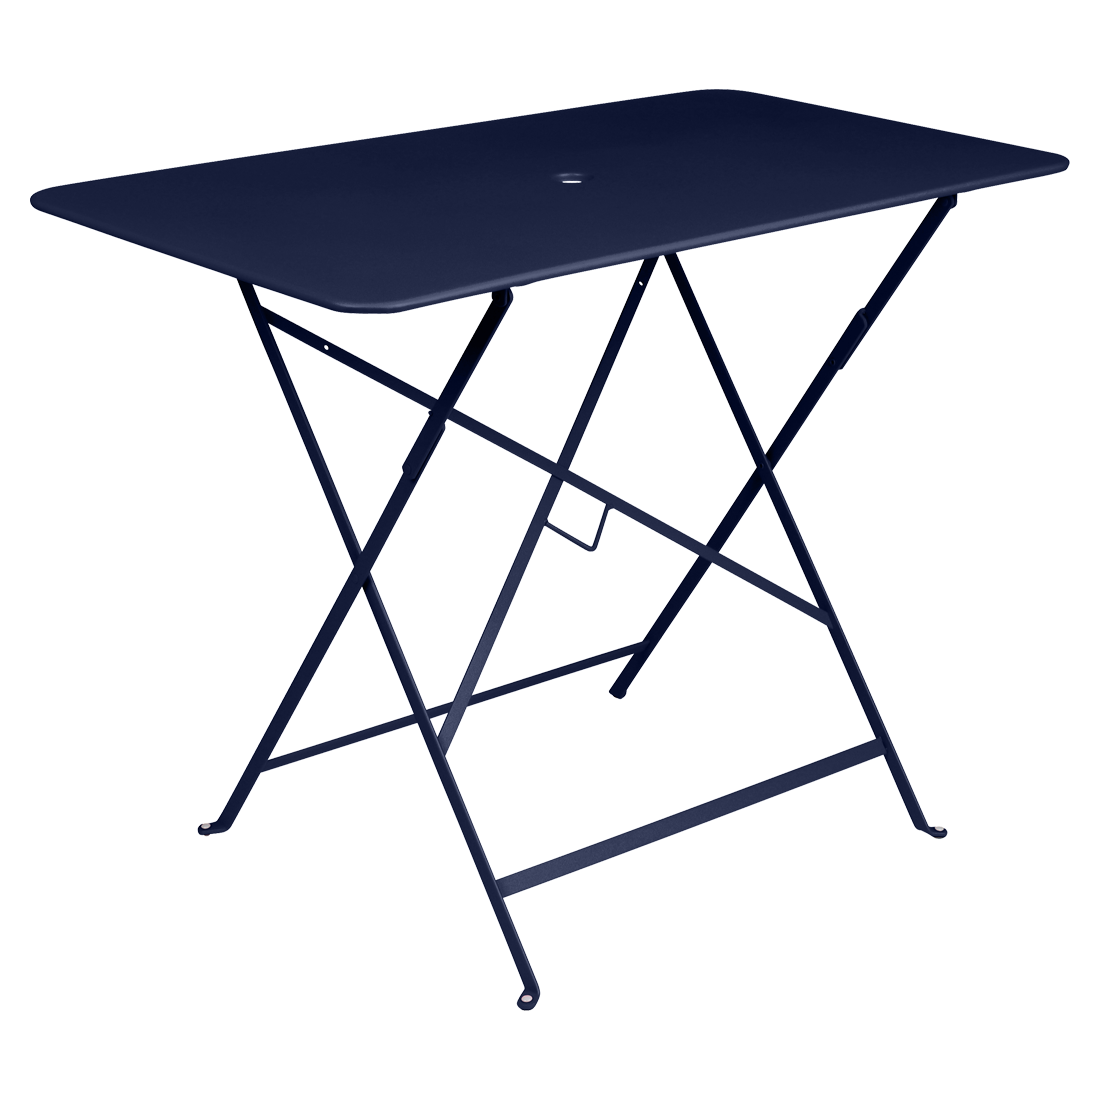 97x57 Cm Bistro Table Metal Table Outdoor Furniture